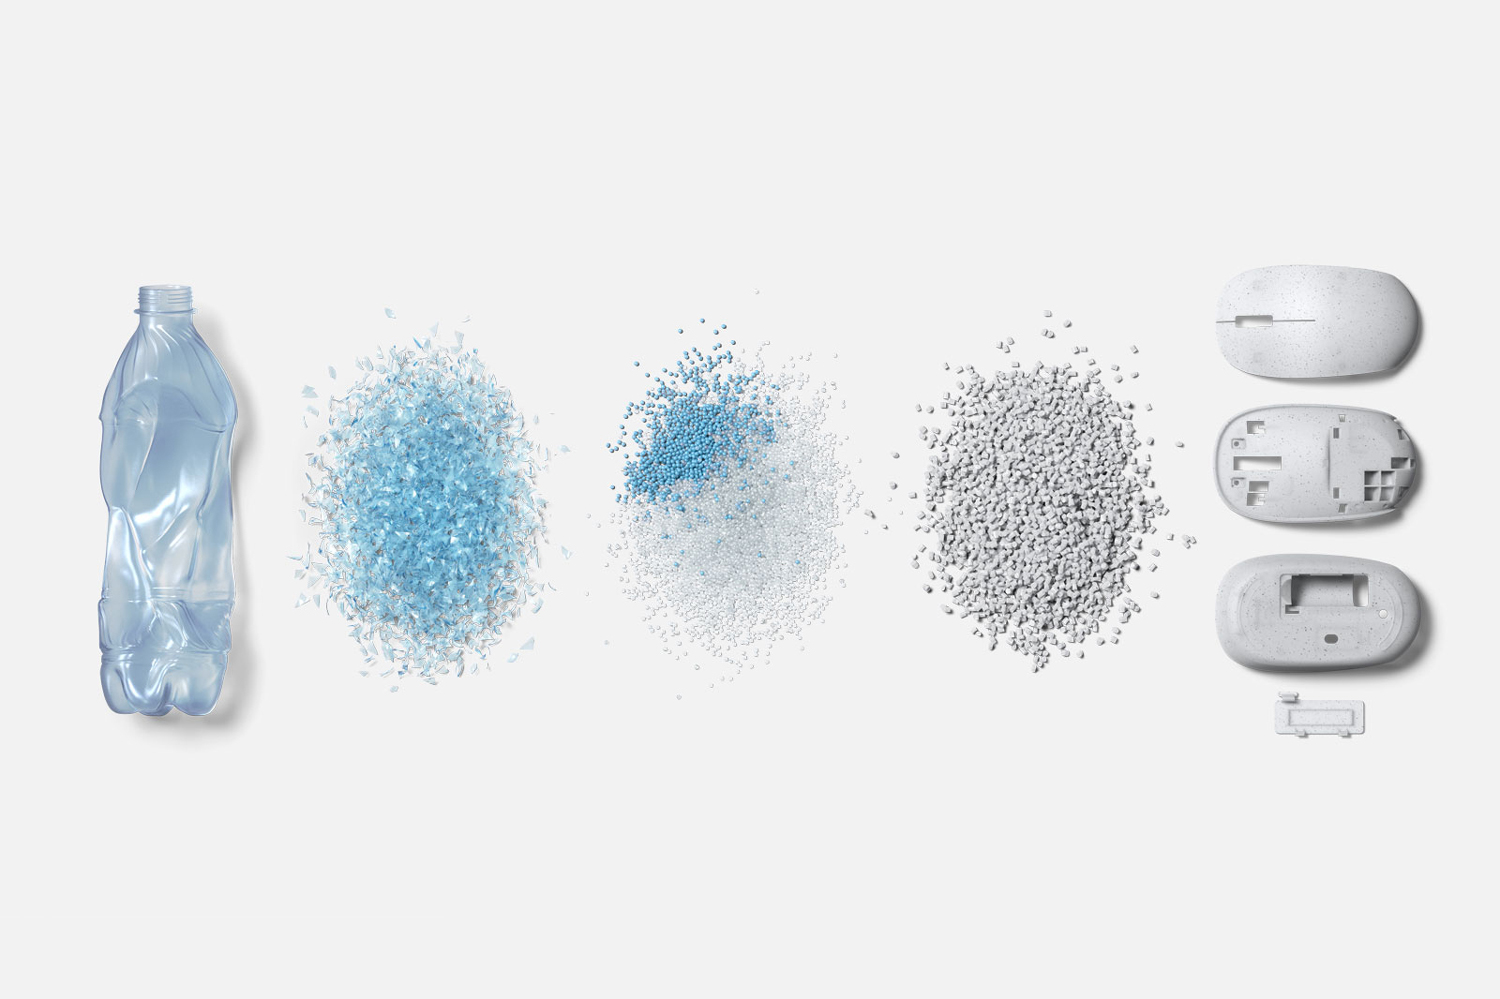 microsoft ocean plastic mouse recycled recycle white blue water sustainable zero waste packaging